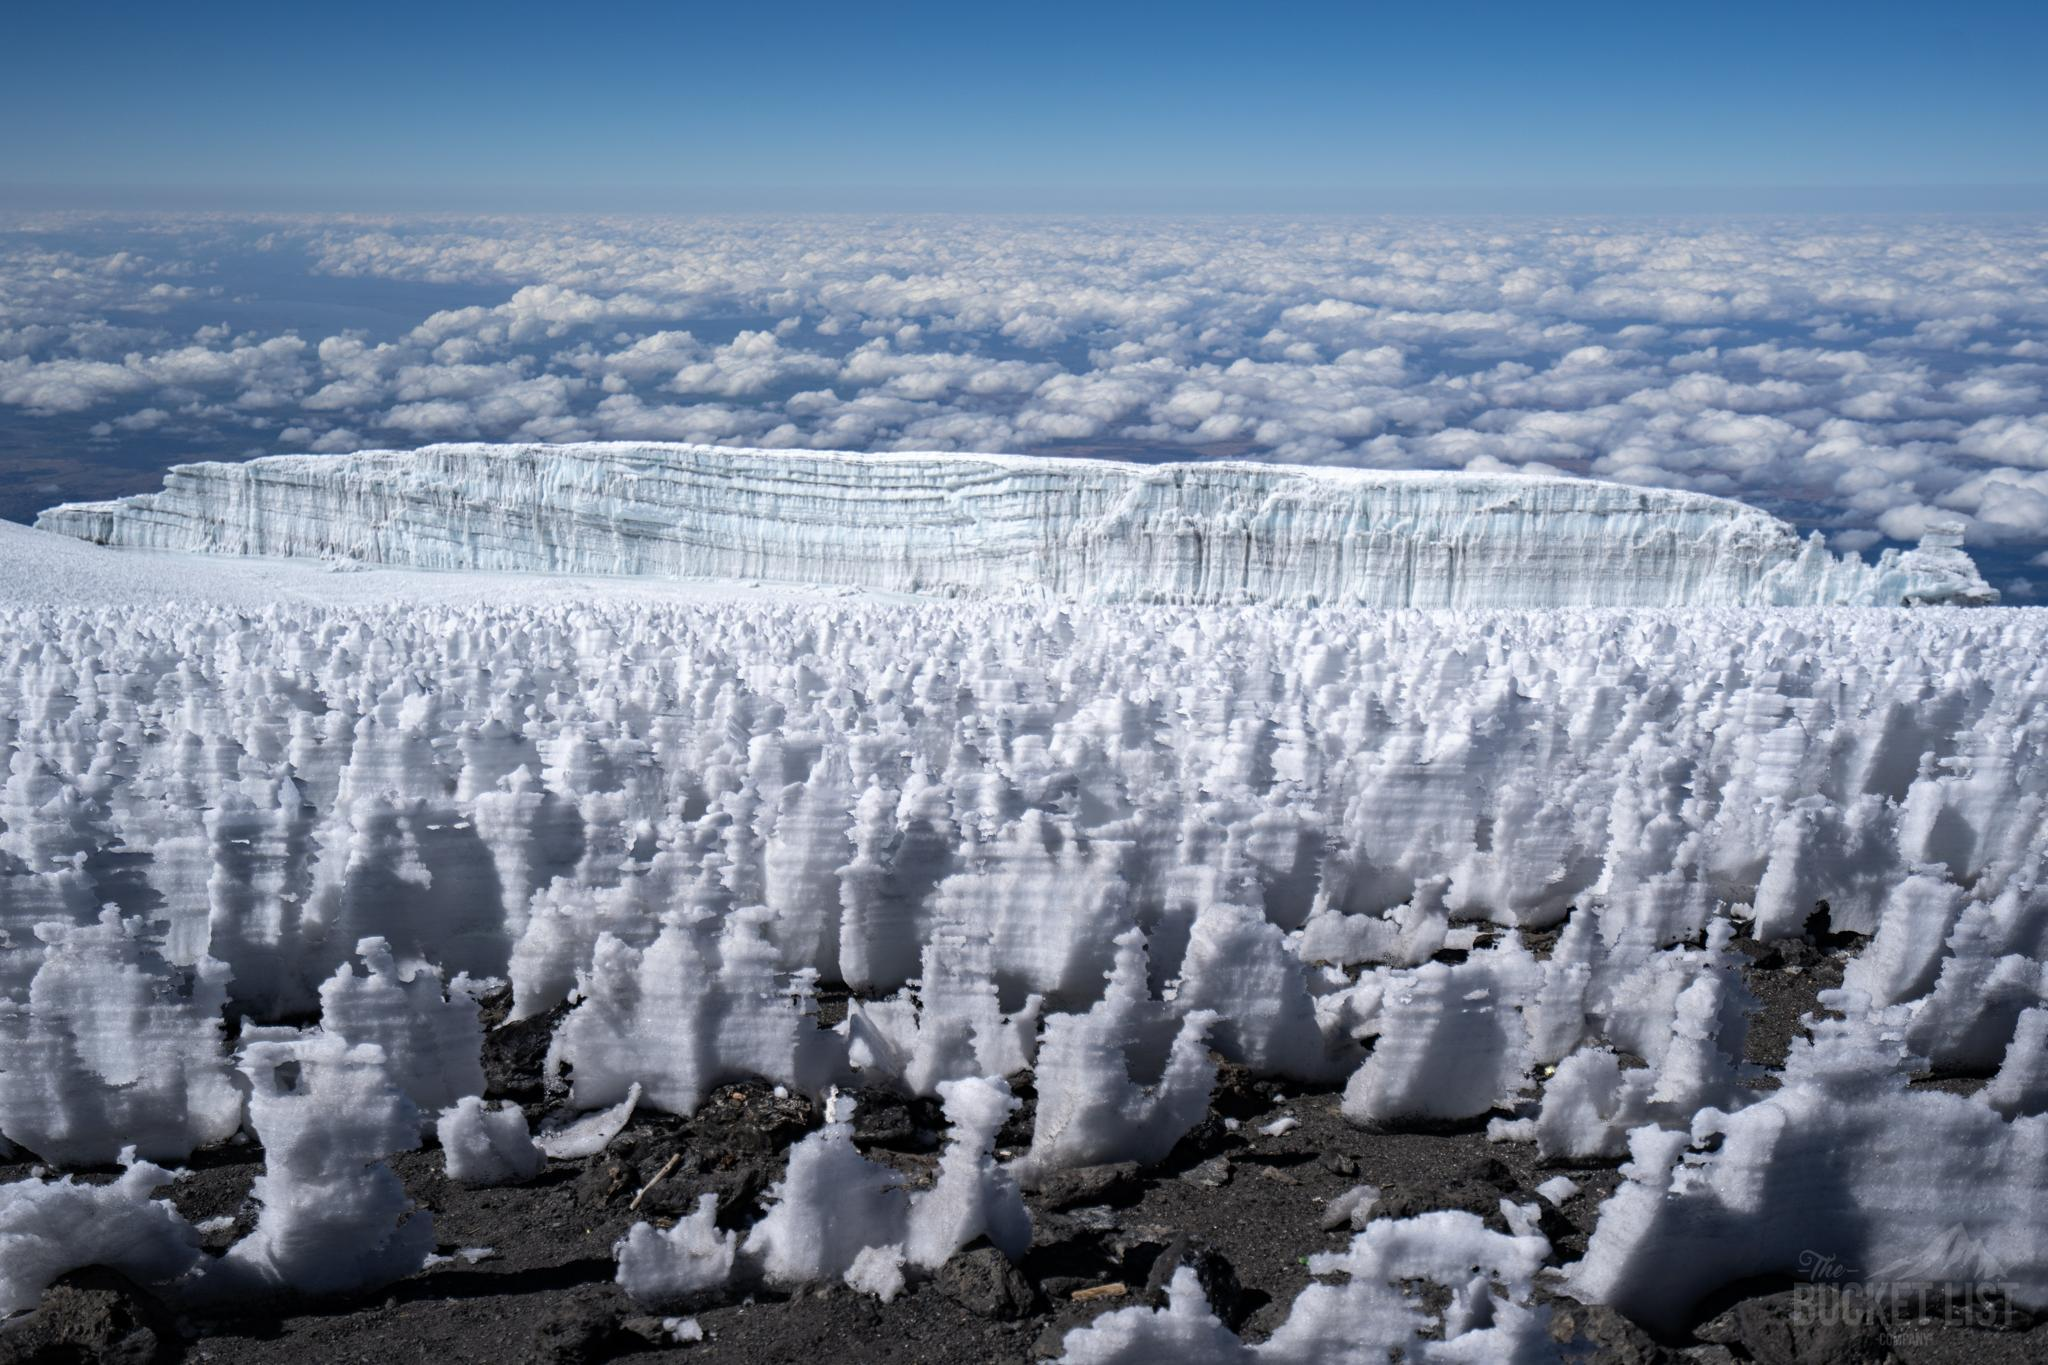 A horizon view looking out over the Kilimanjaro Glacier